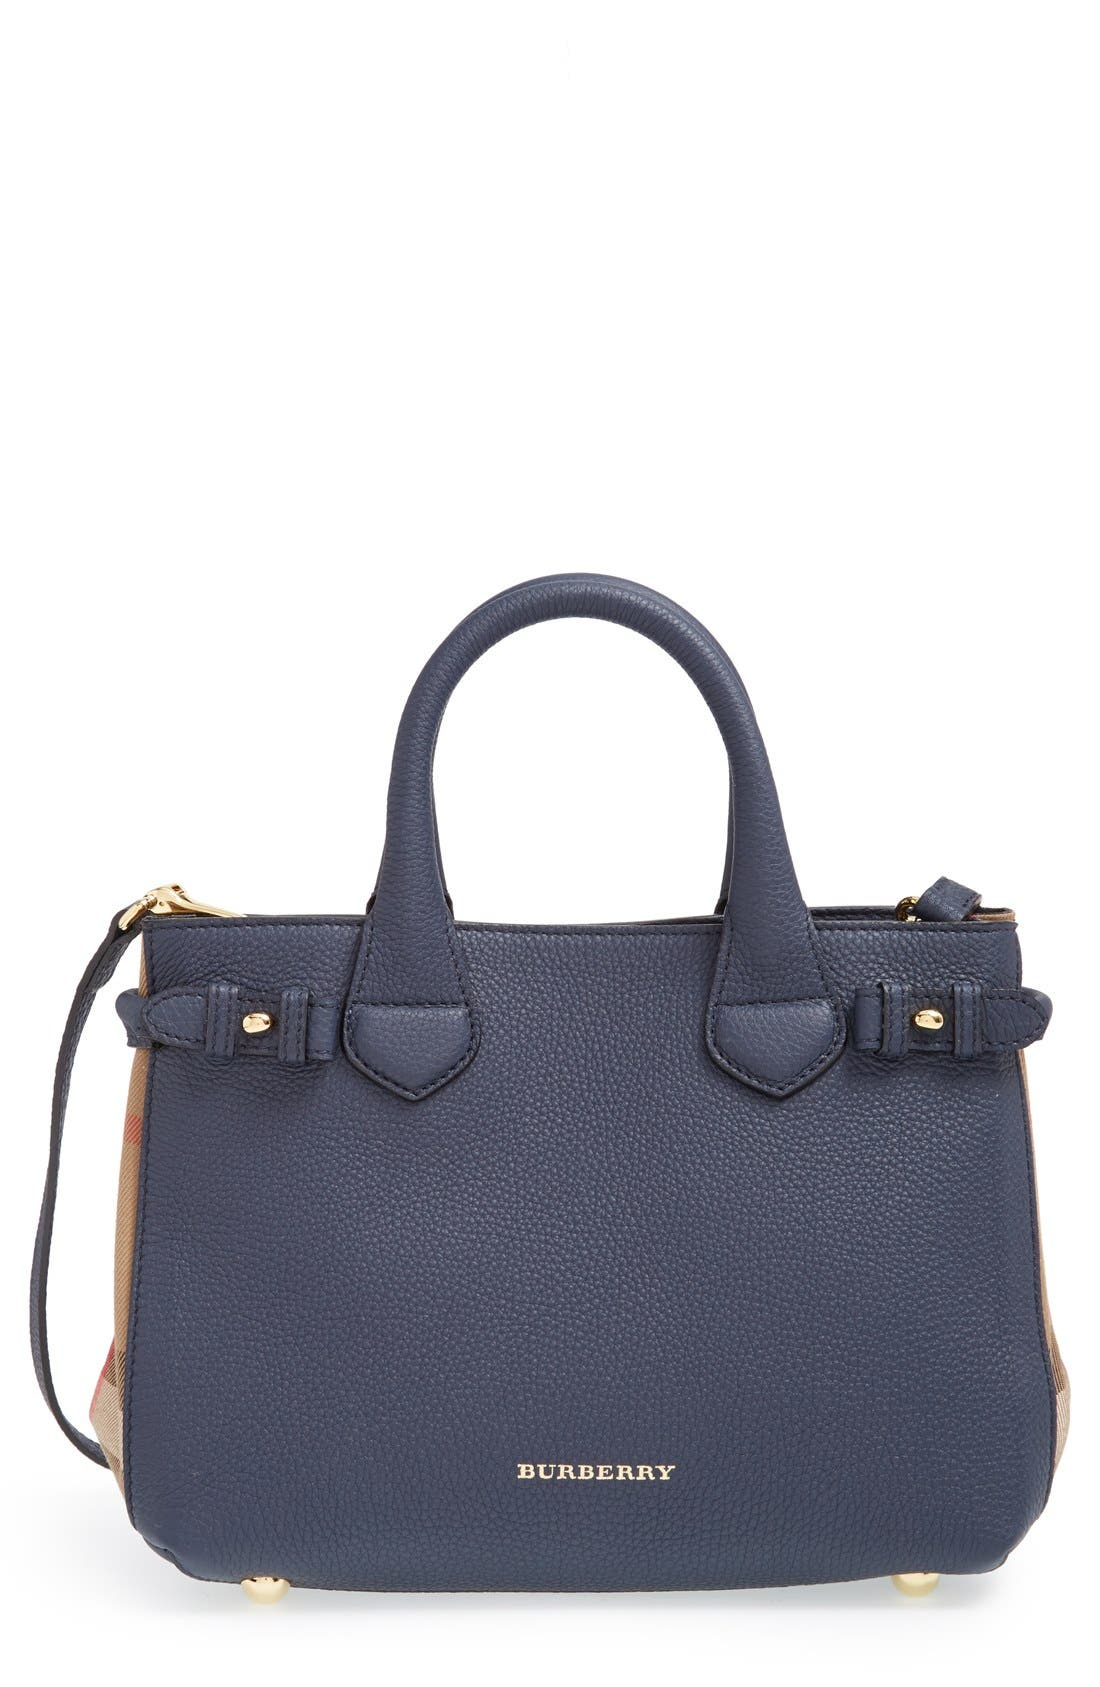 Main Image - Burberry 'Small Banner' House Check Leather Tote